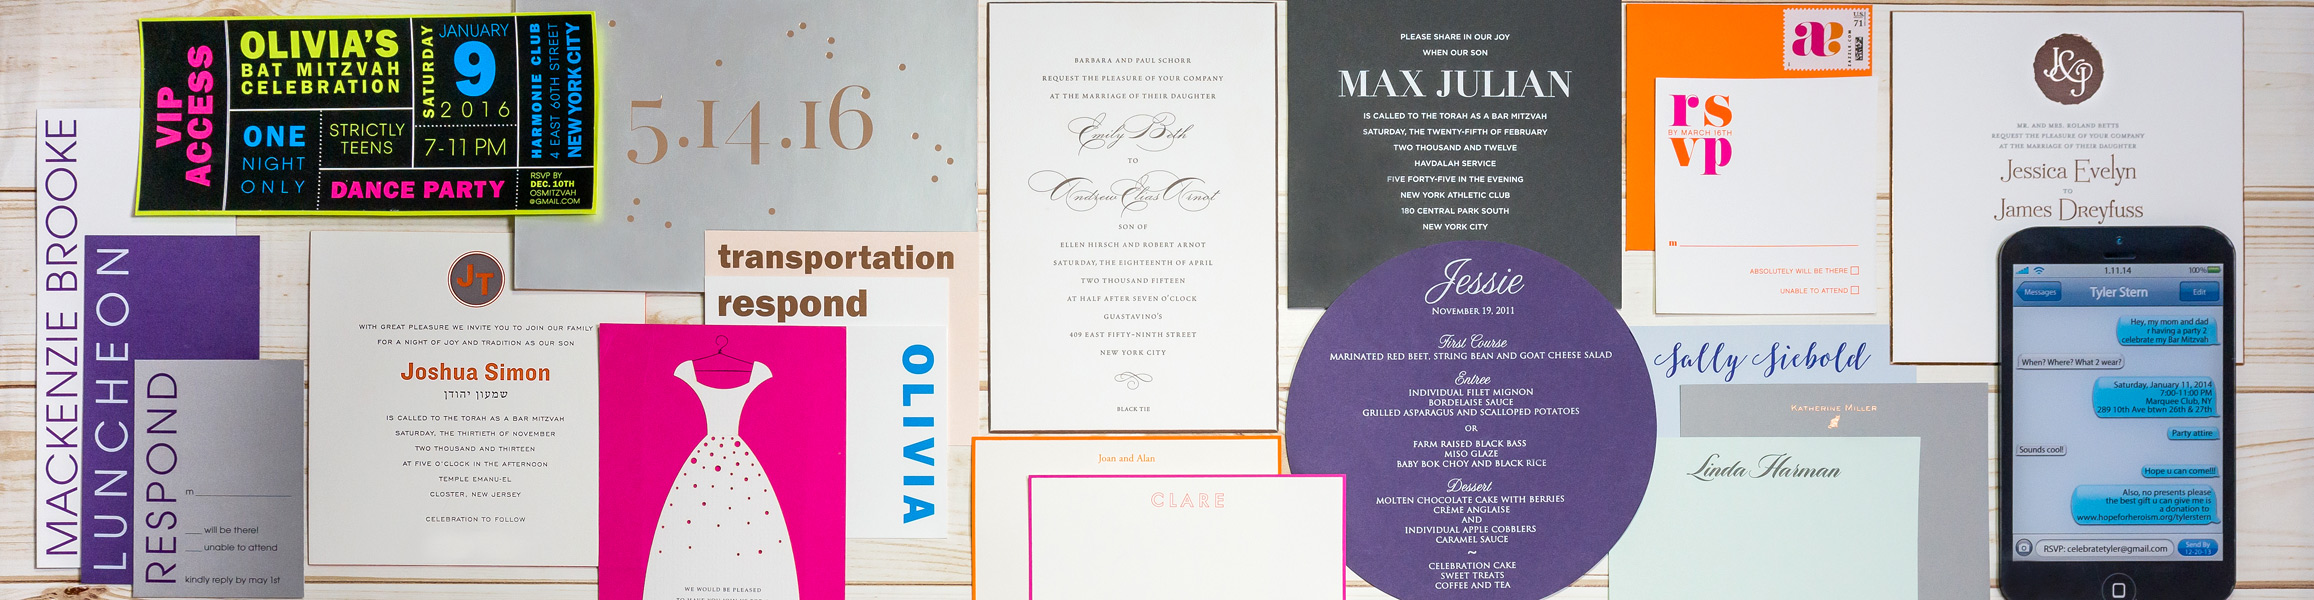 Weddings, Birthdays, Bat/Bar Mitzvahs, Anniversaries - made memorable with personalized invitations and favors